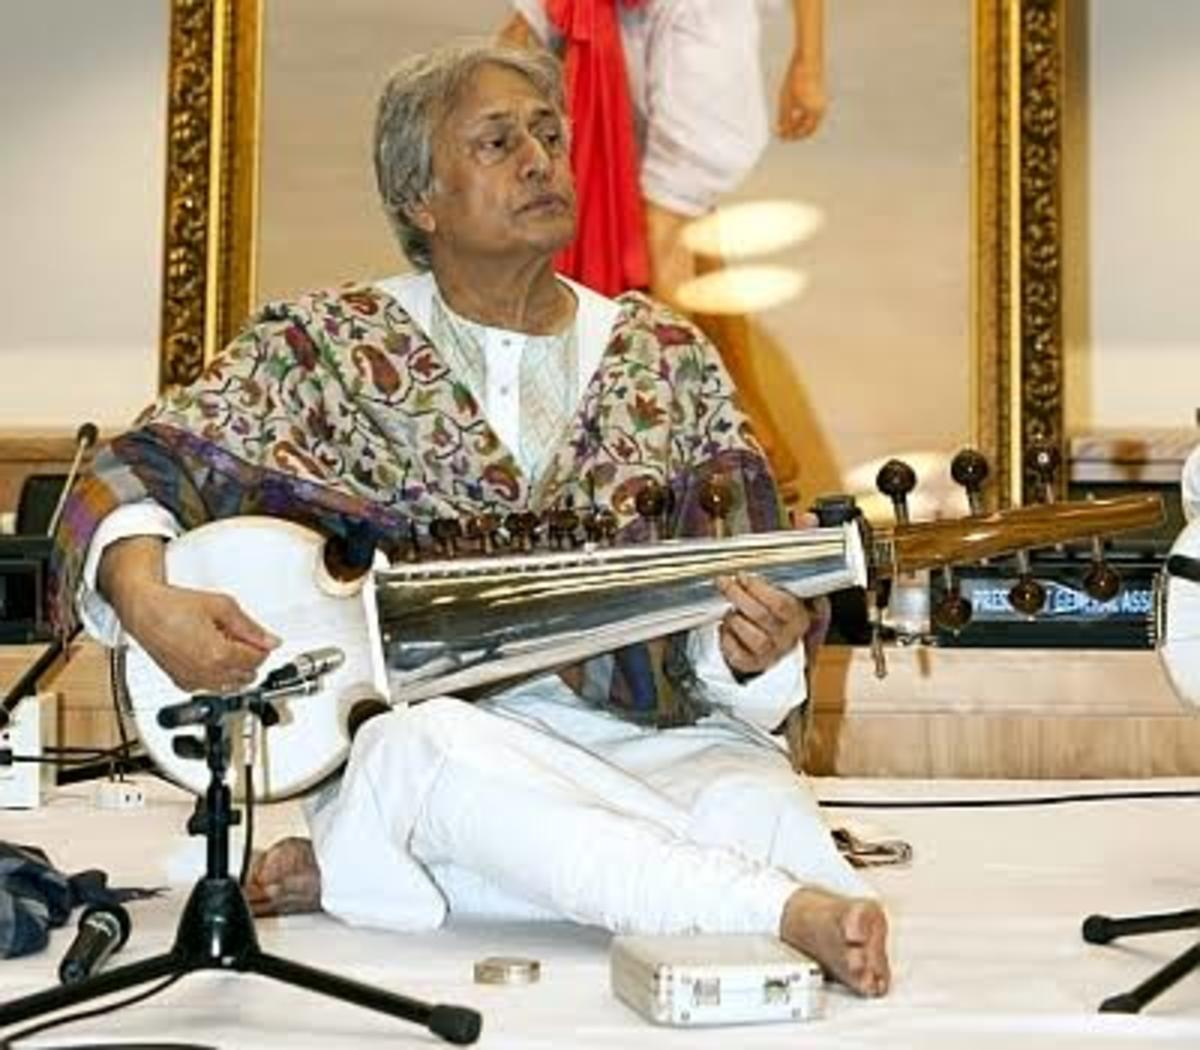 Indian musical instrument, the Sarod Artist—Ustaad Amzad Ali Khan